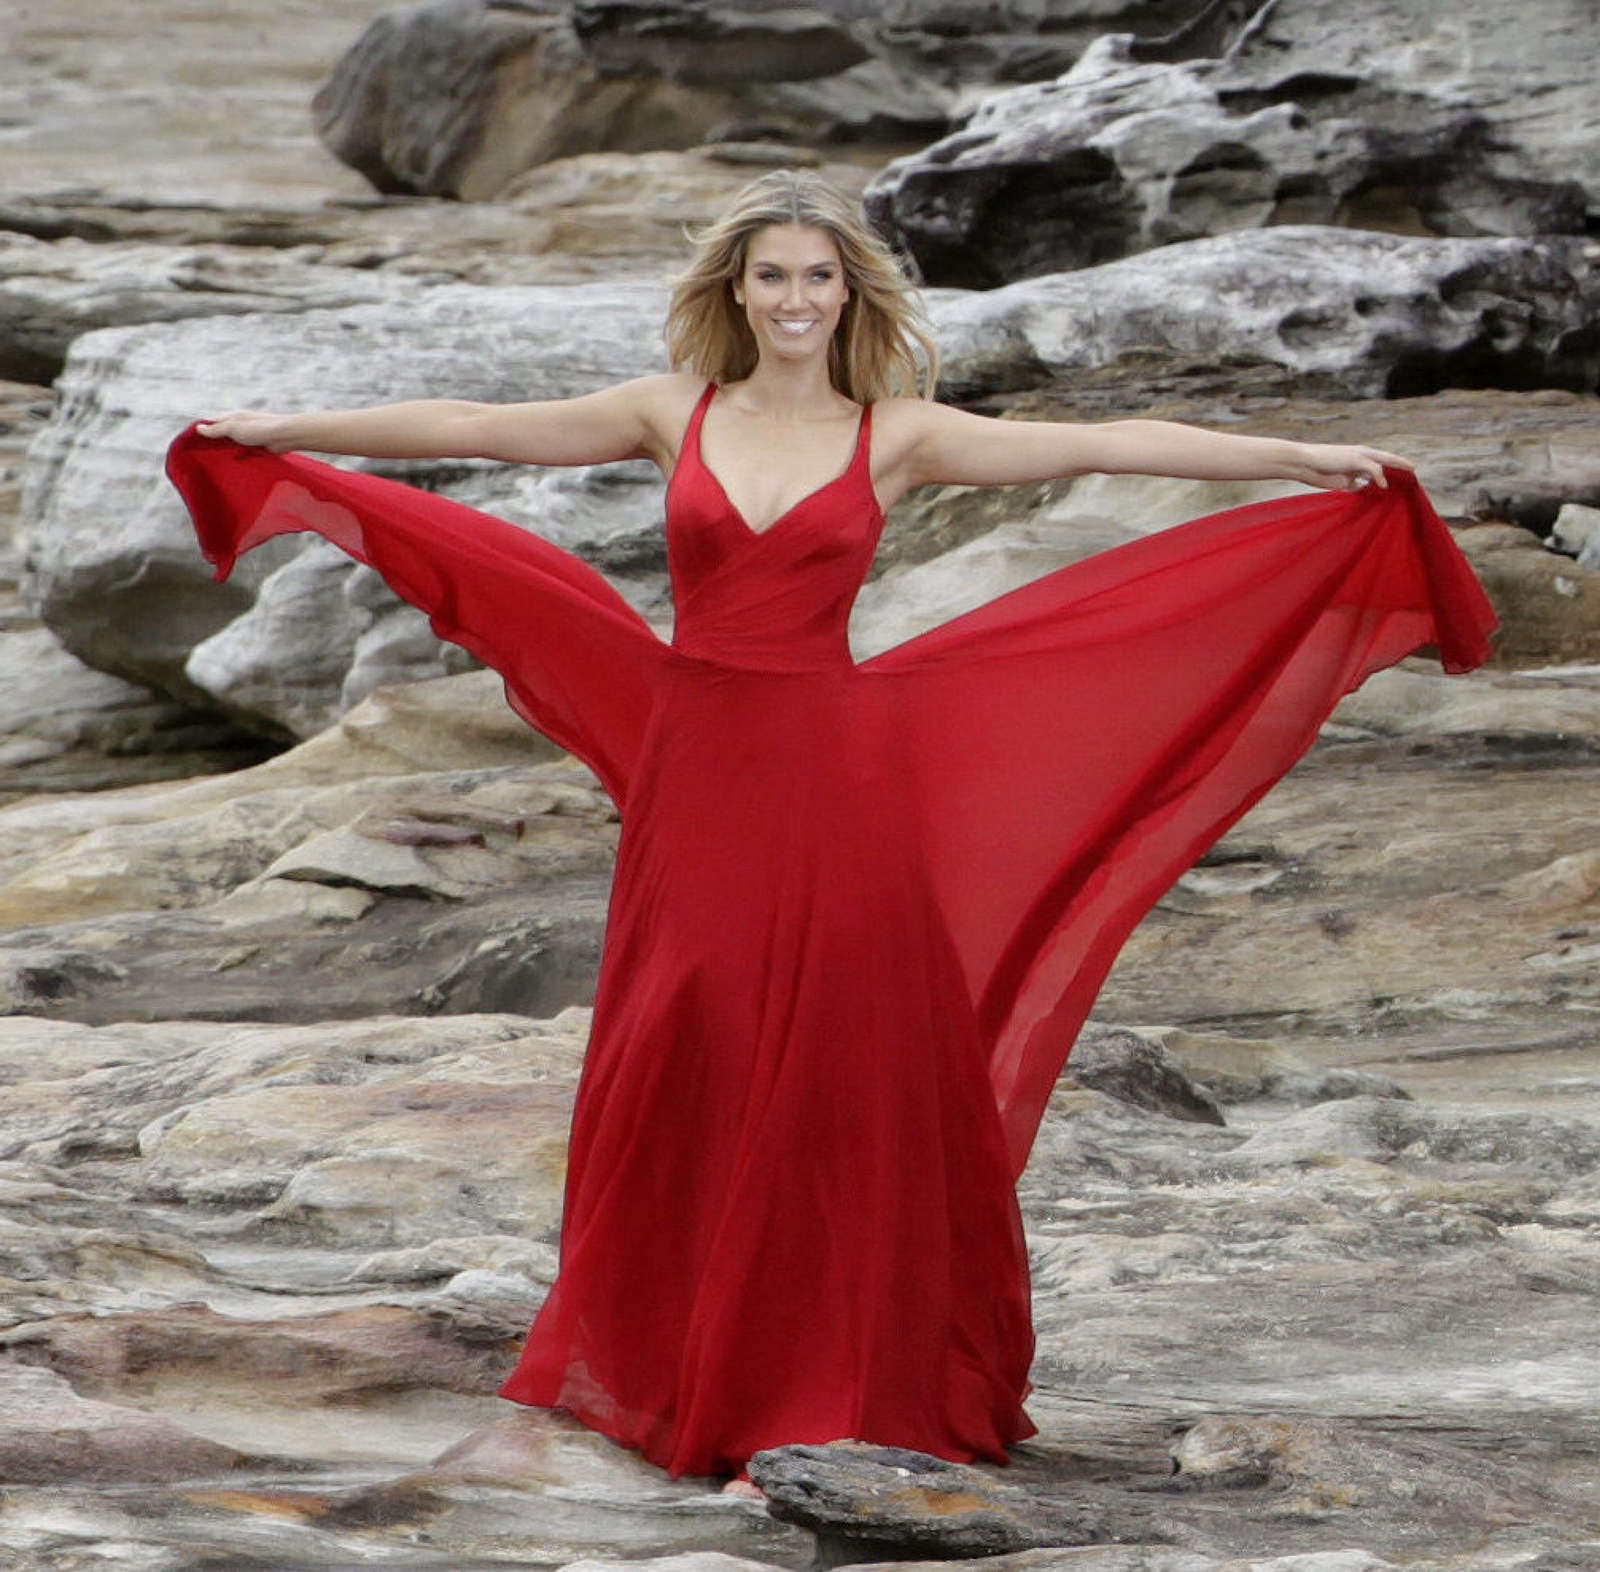 Delta Goodrem Swiss Commercial Photoshoot In Sydney 03